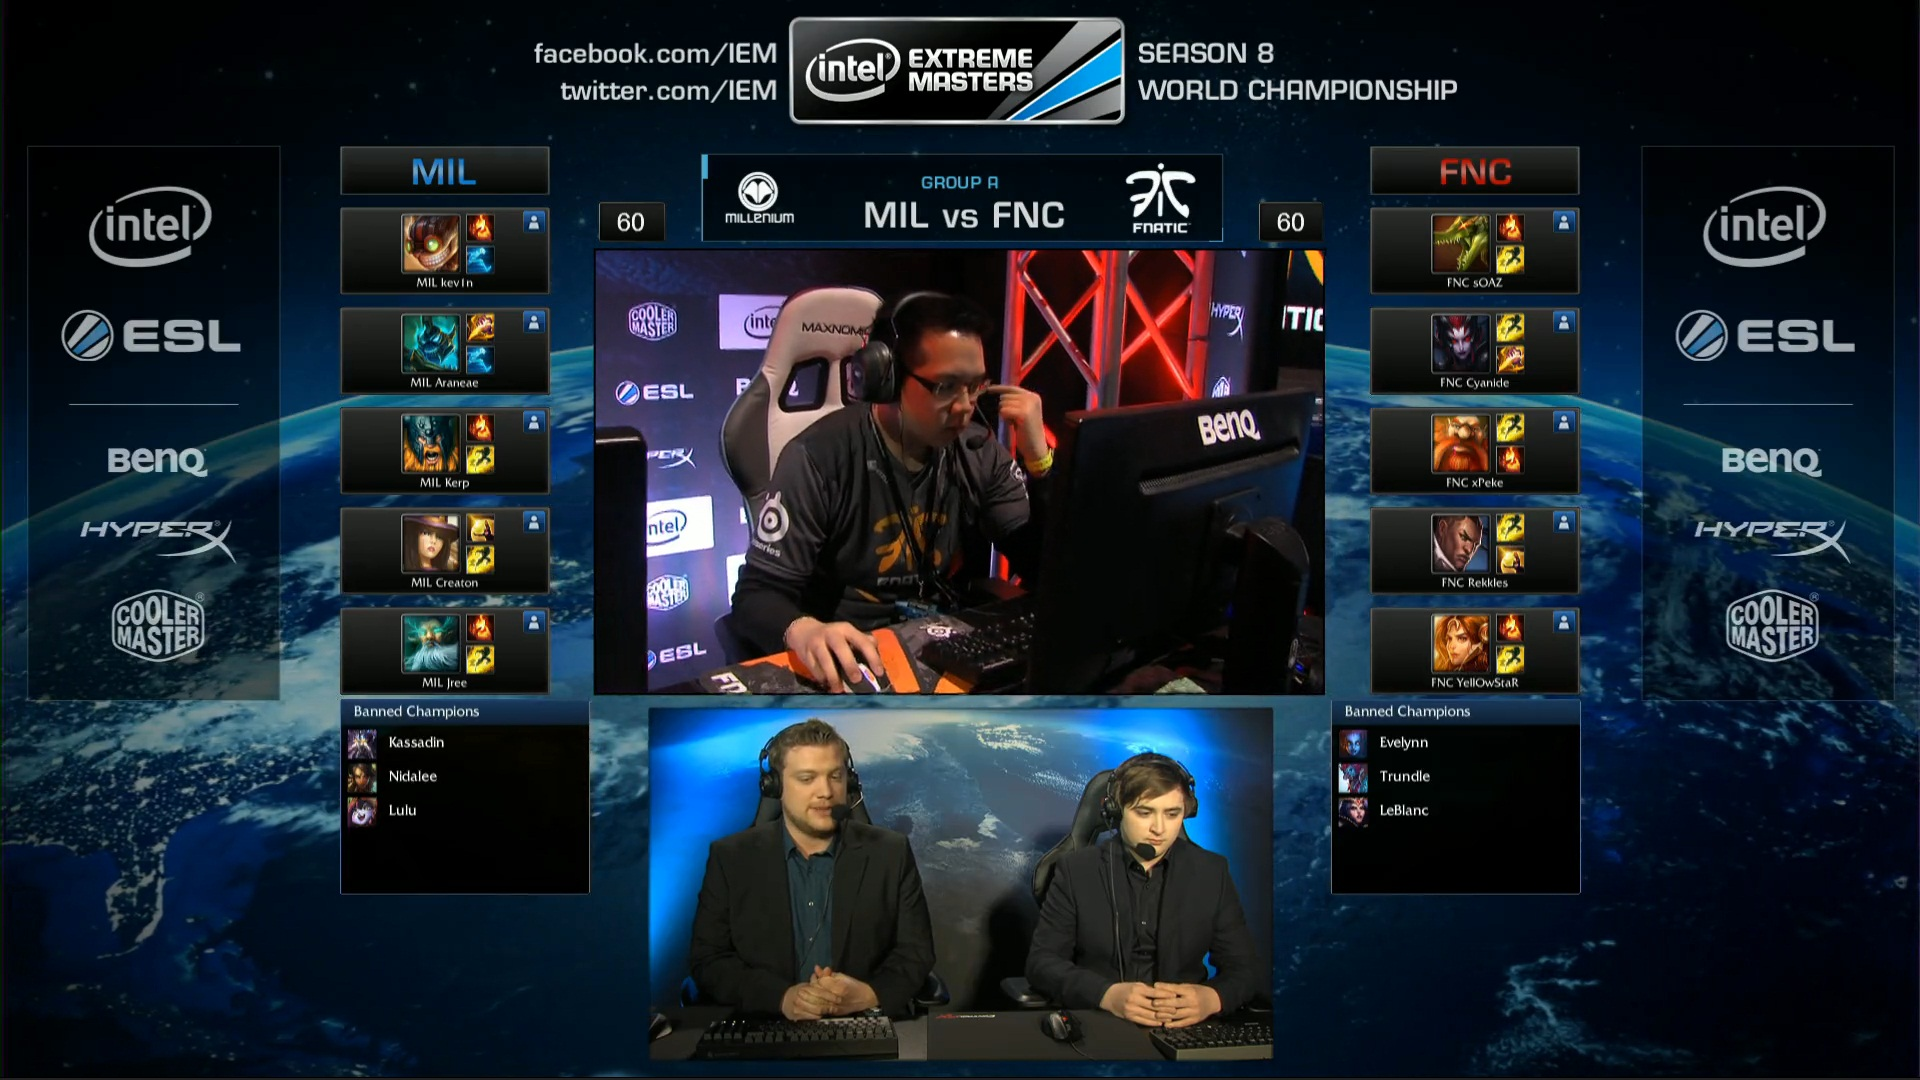 Mil vs Fnatic GROUPE A